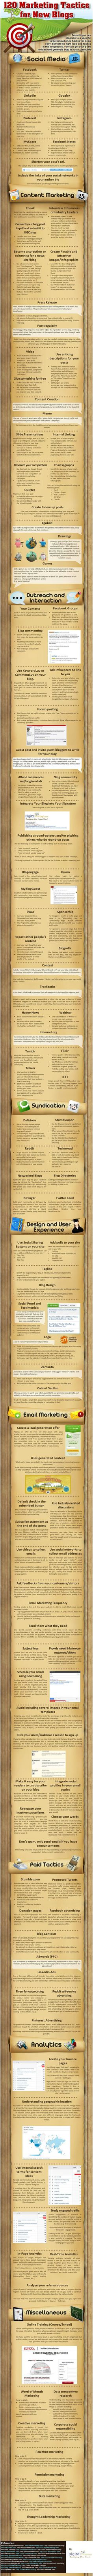 120 #Marketing Tactics For Your Blog [Infographic] - #blogging #infographic